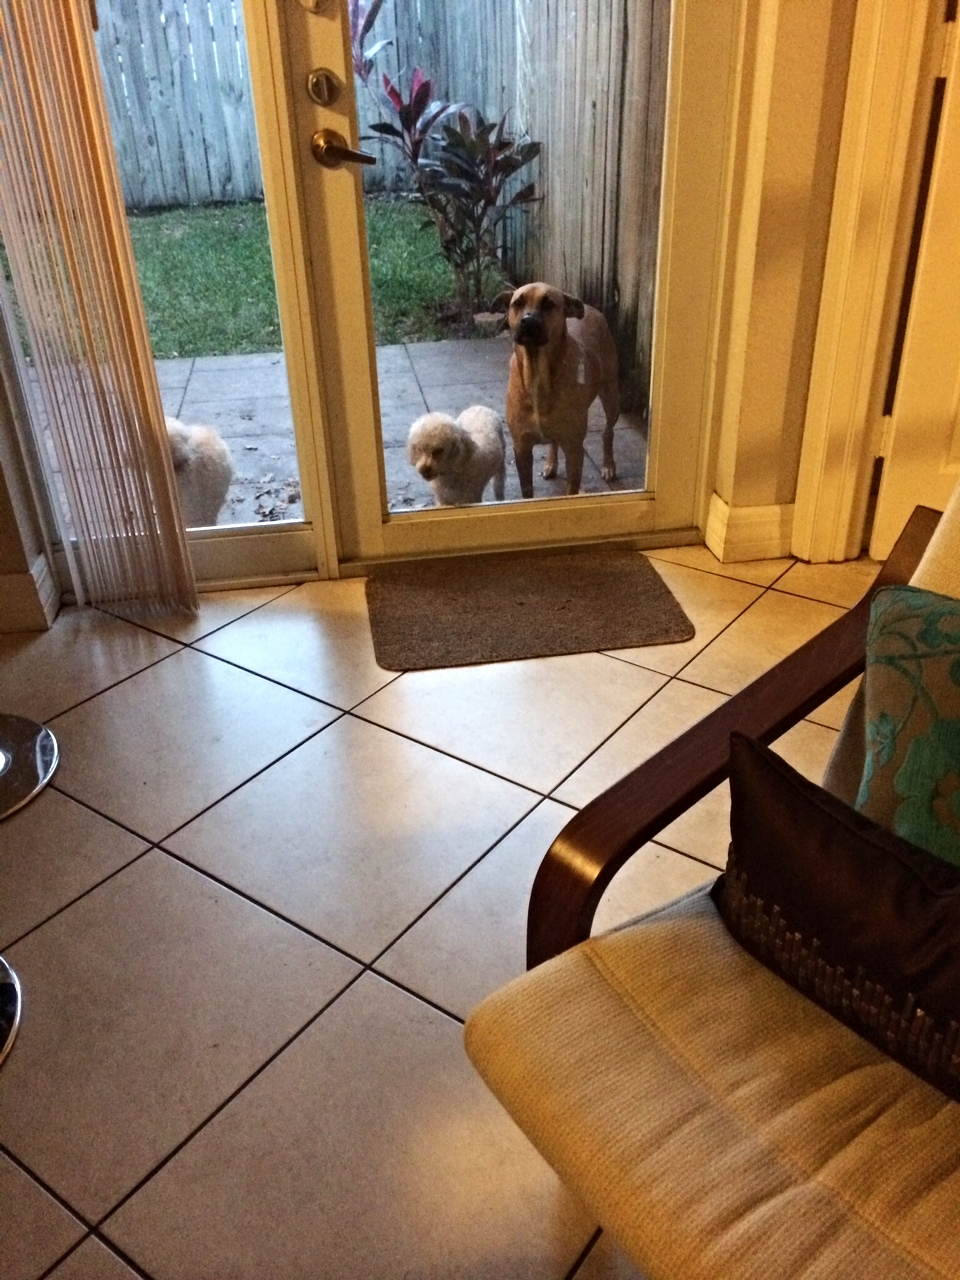 They really hated to be outside. Miami is very muggy.